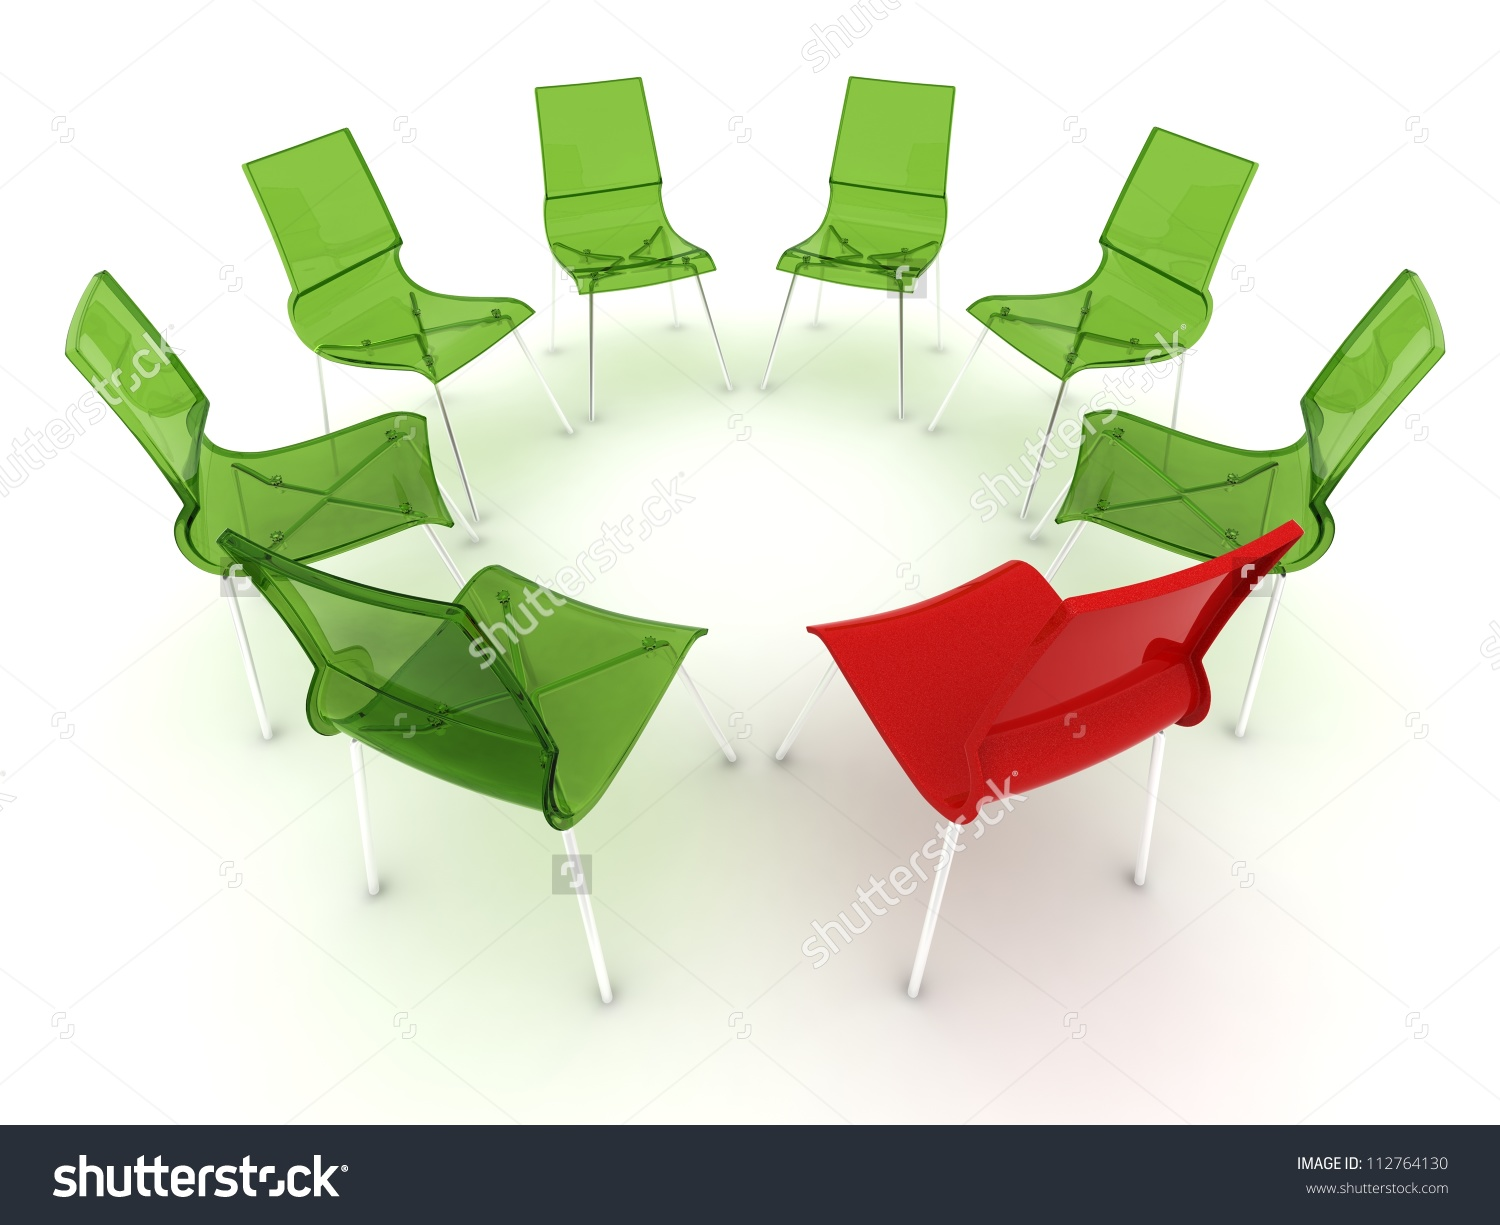 Red Chair In A Circle With Transparent Green Chairs Stock Photo.